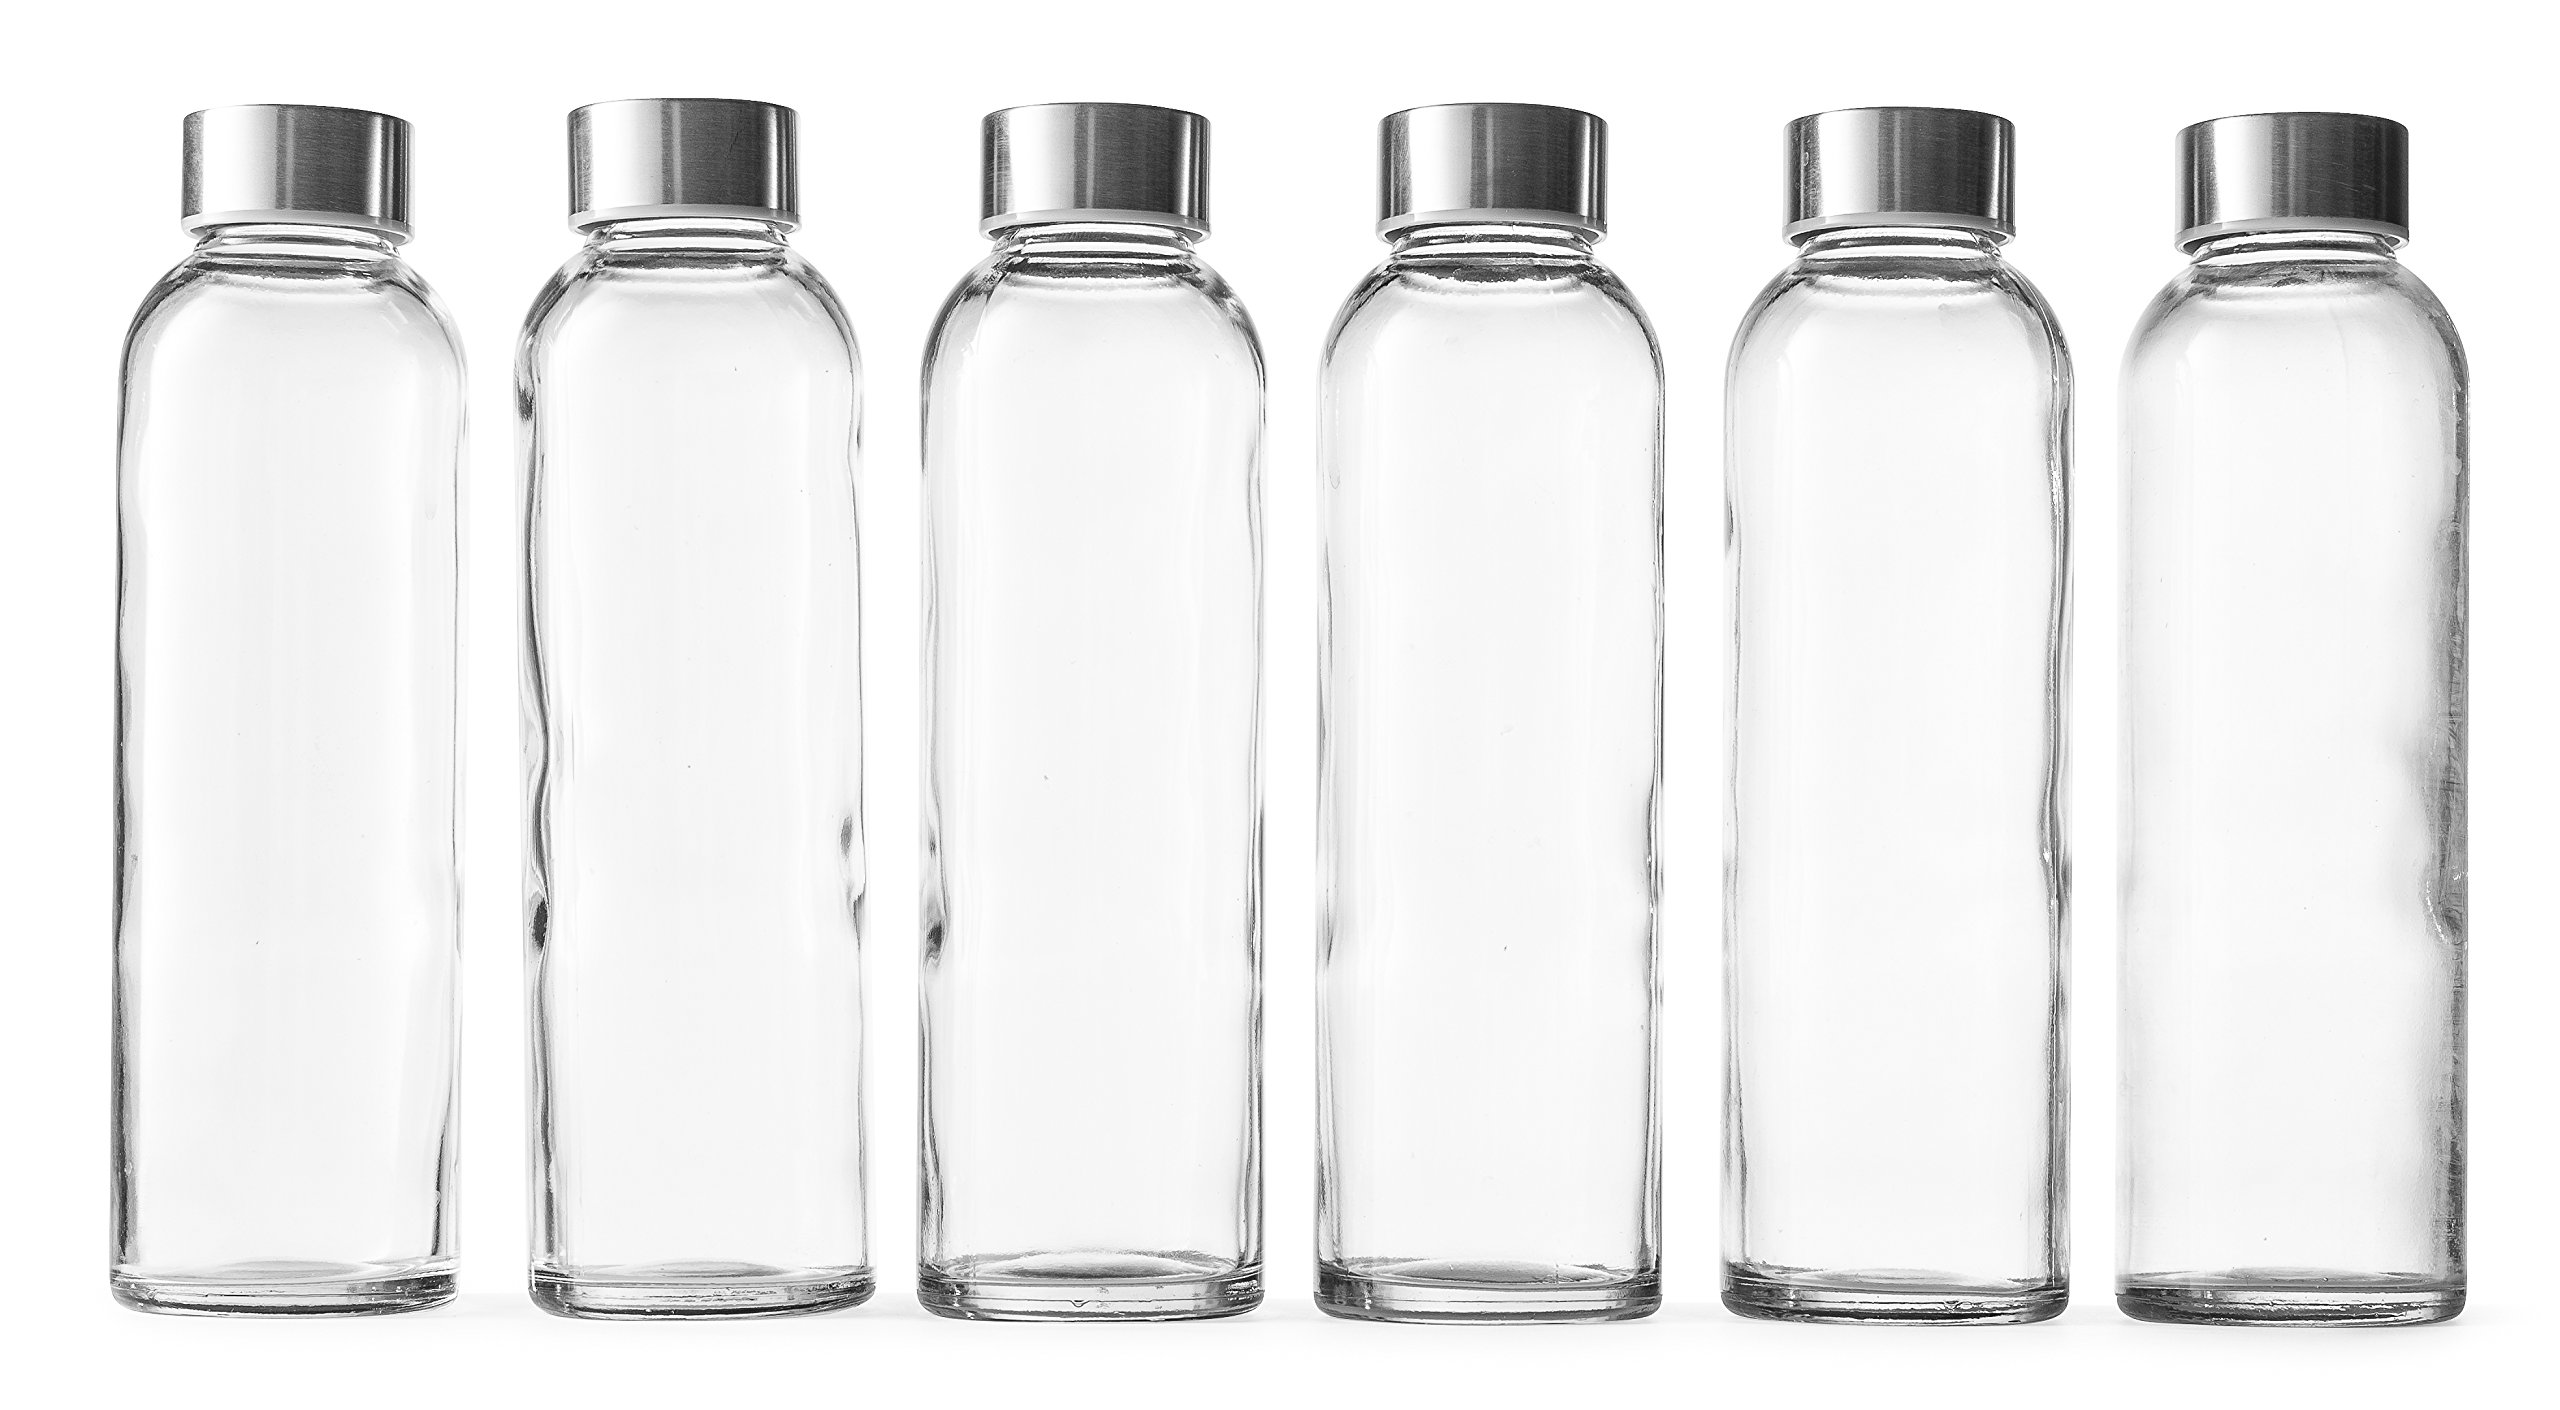 Epica 18-Oz. Glass Beverage Bottles, Set of 6 by Epica (Image #1)